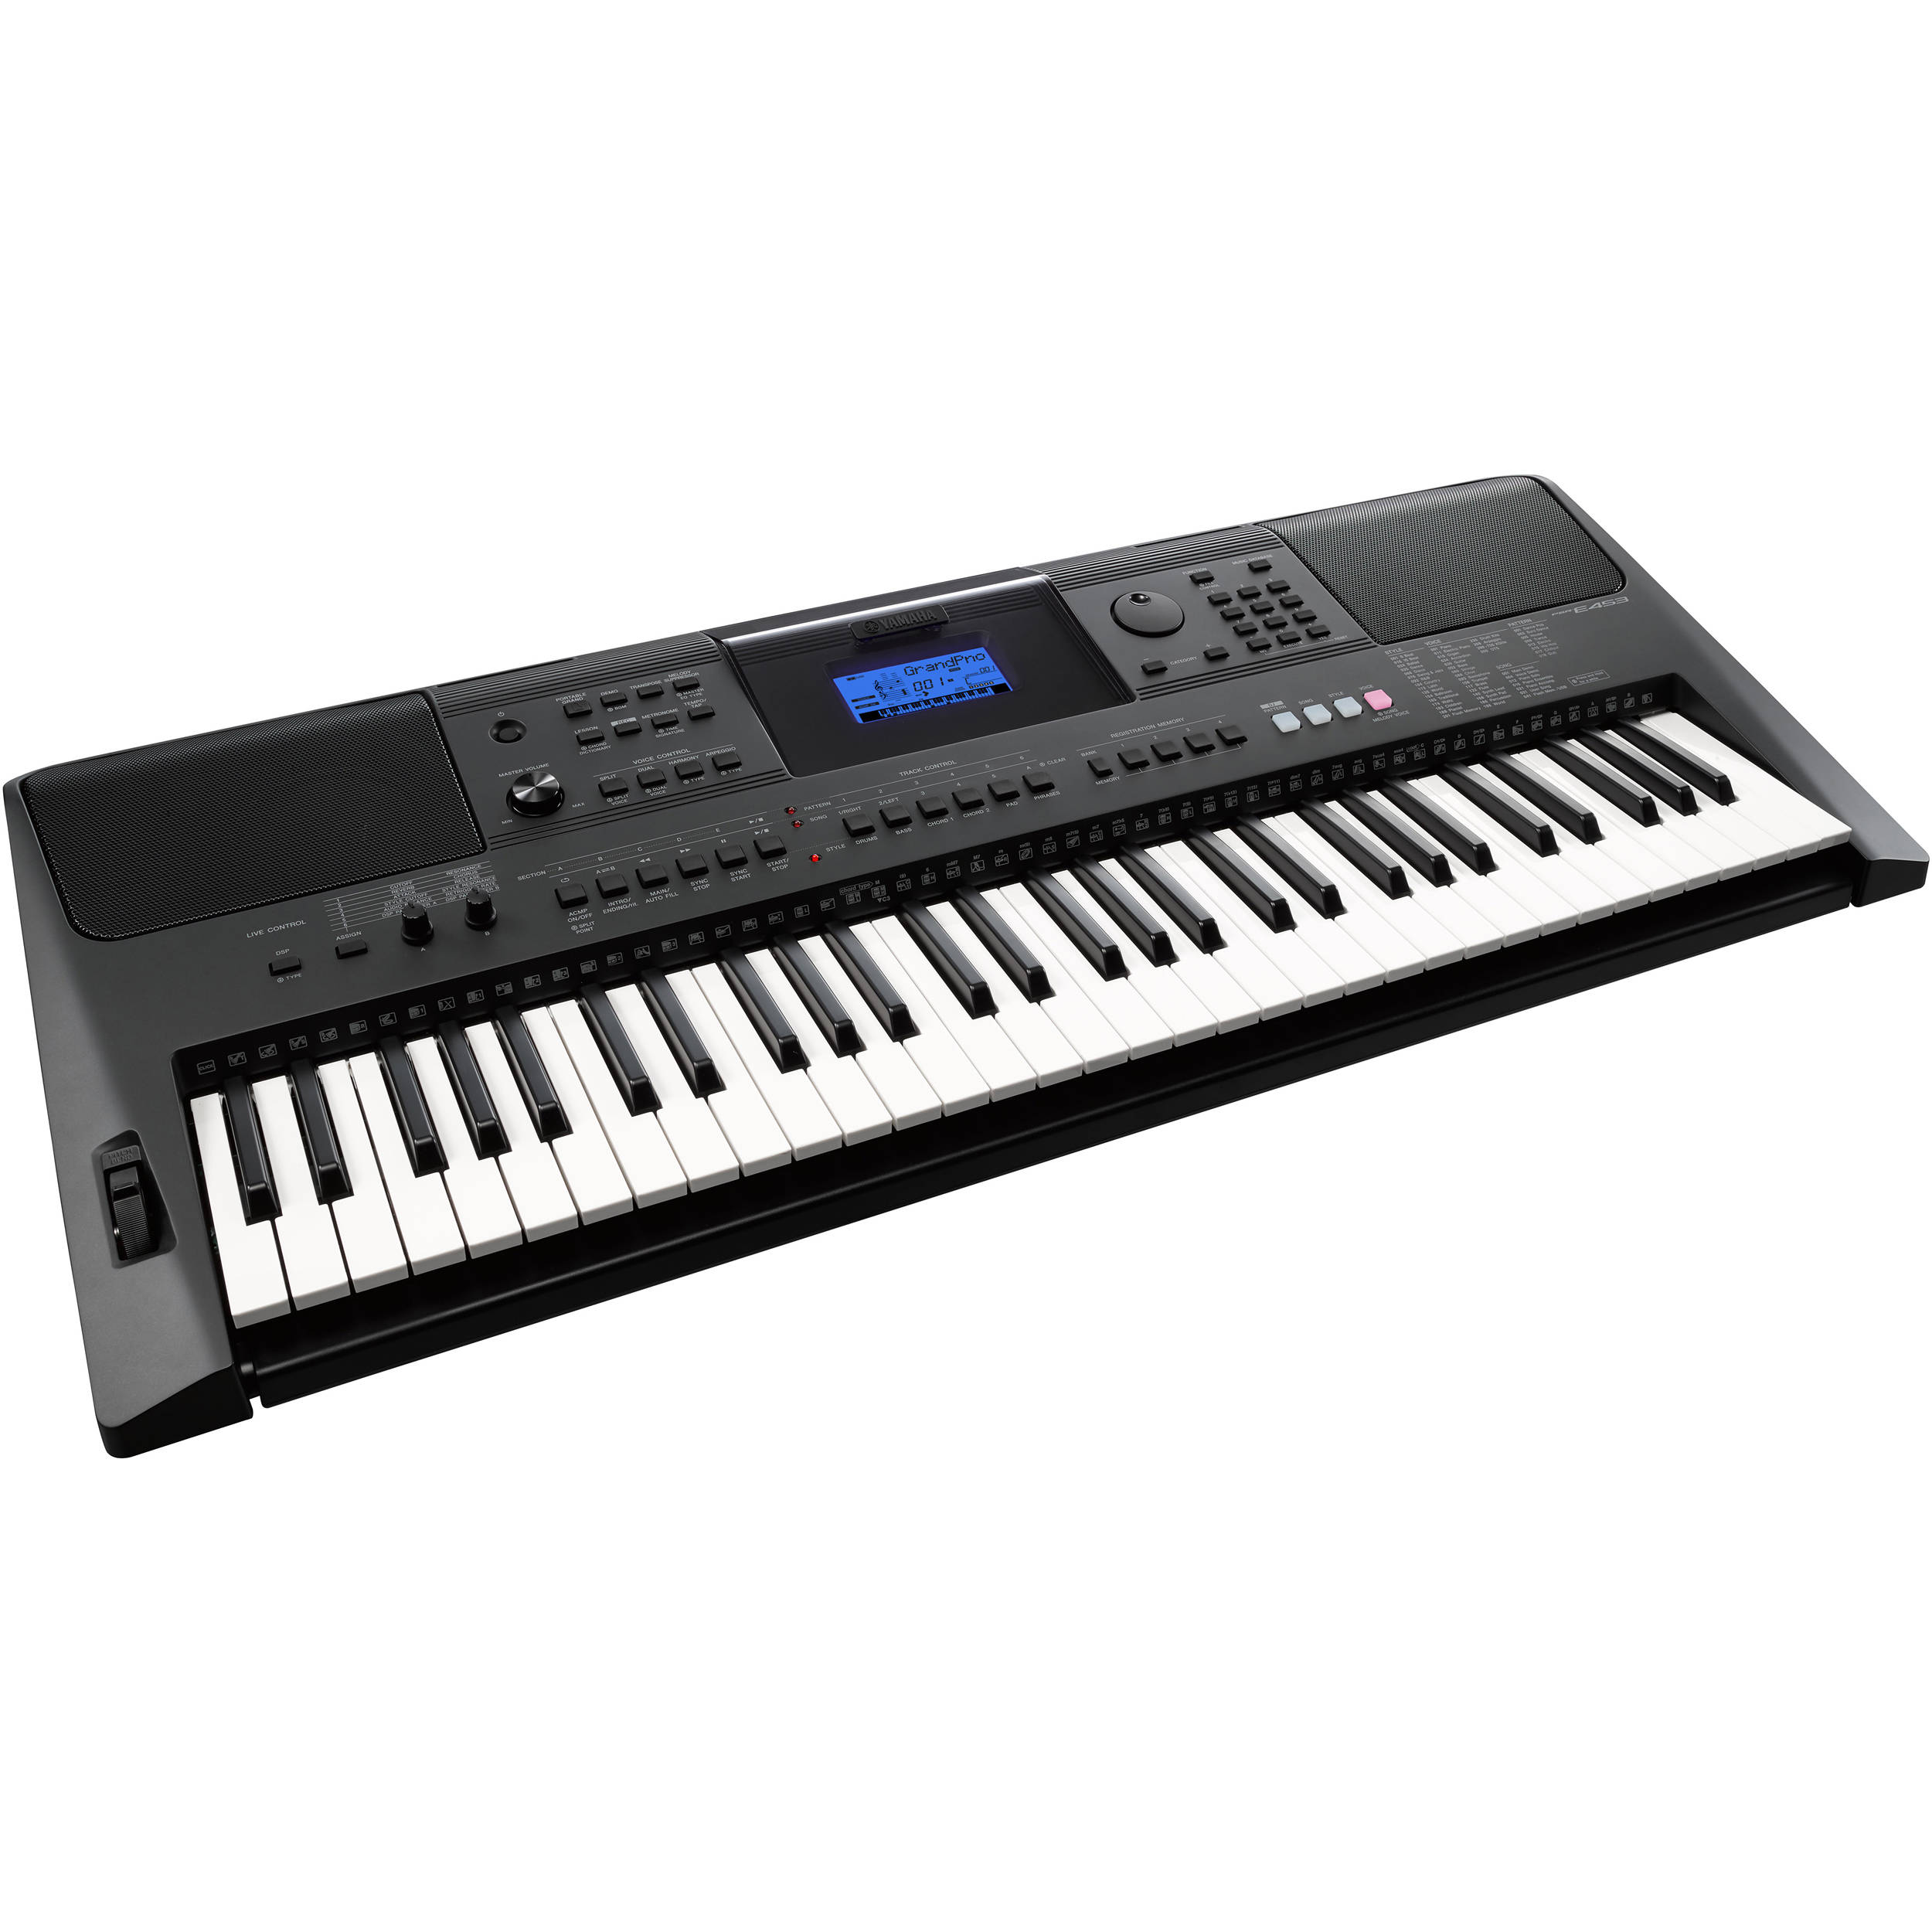 yamaha psr e453 portable keyboard no power adapter psre453. Black Bedroom Furniture Sets. Home Design Ideas